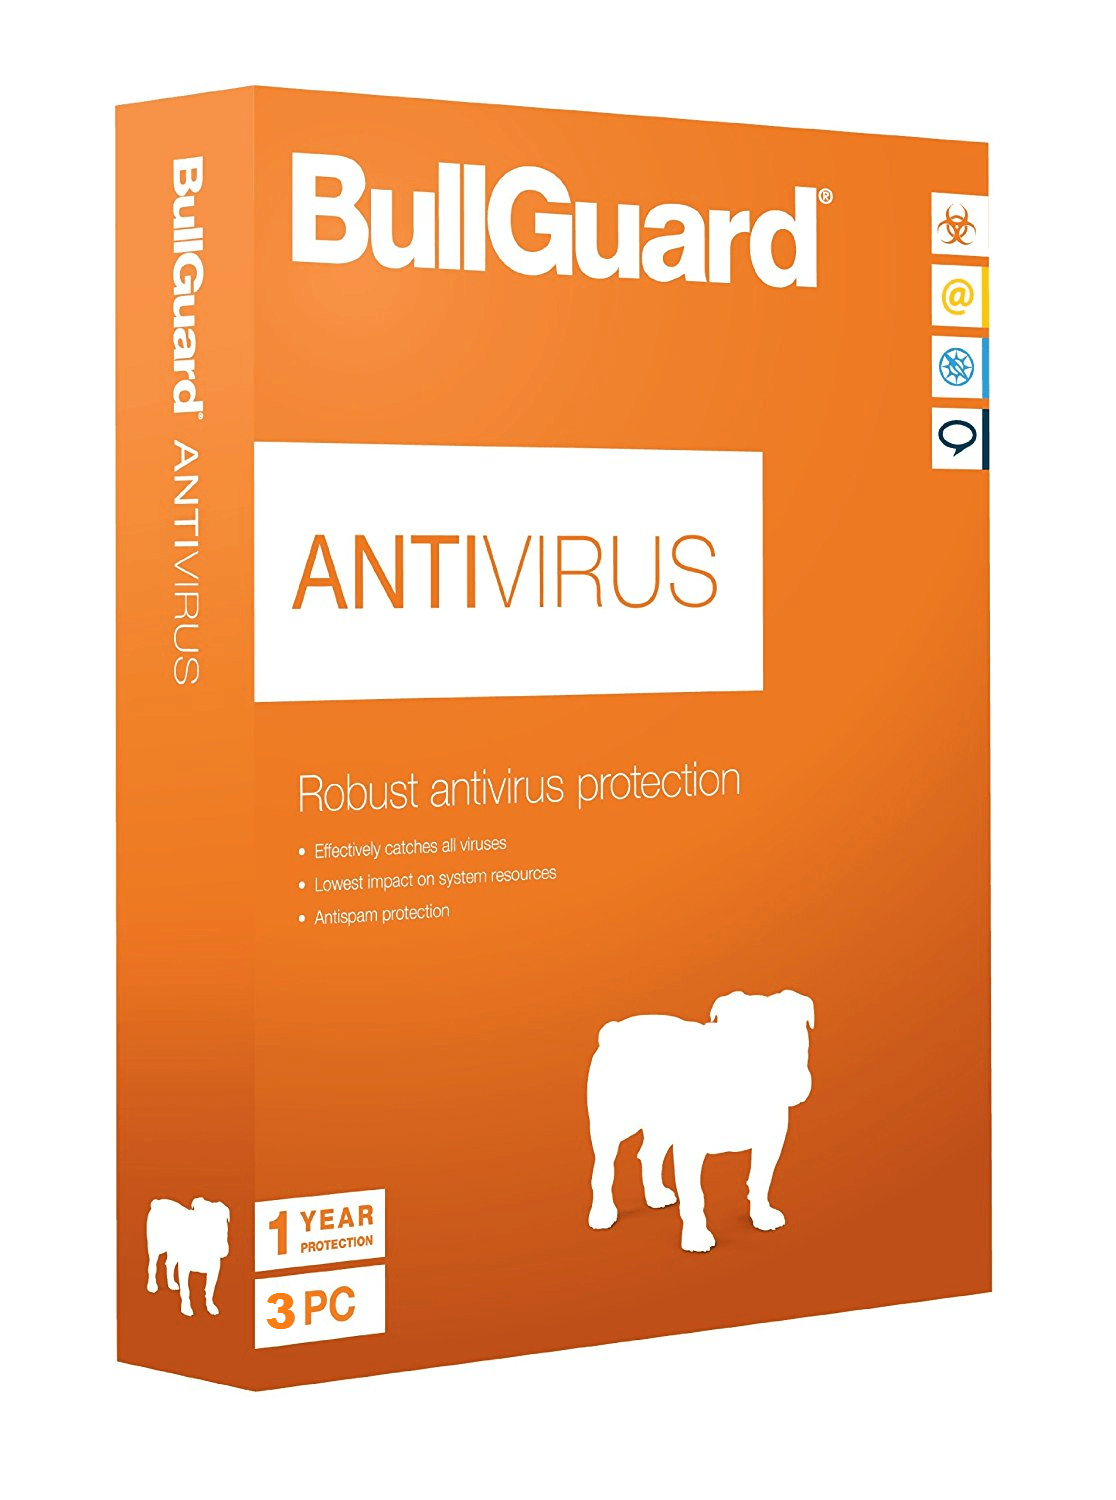 Cheap Antivirus BullGuard Latest Antivirus Protection - For Windows PC's - InterSecure